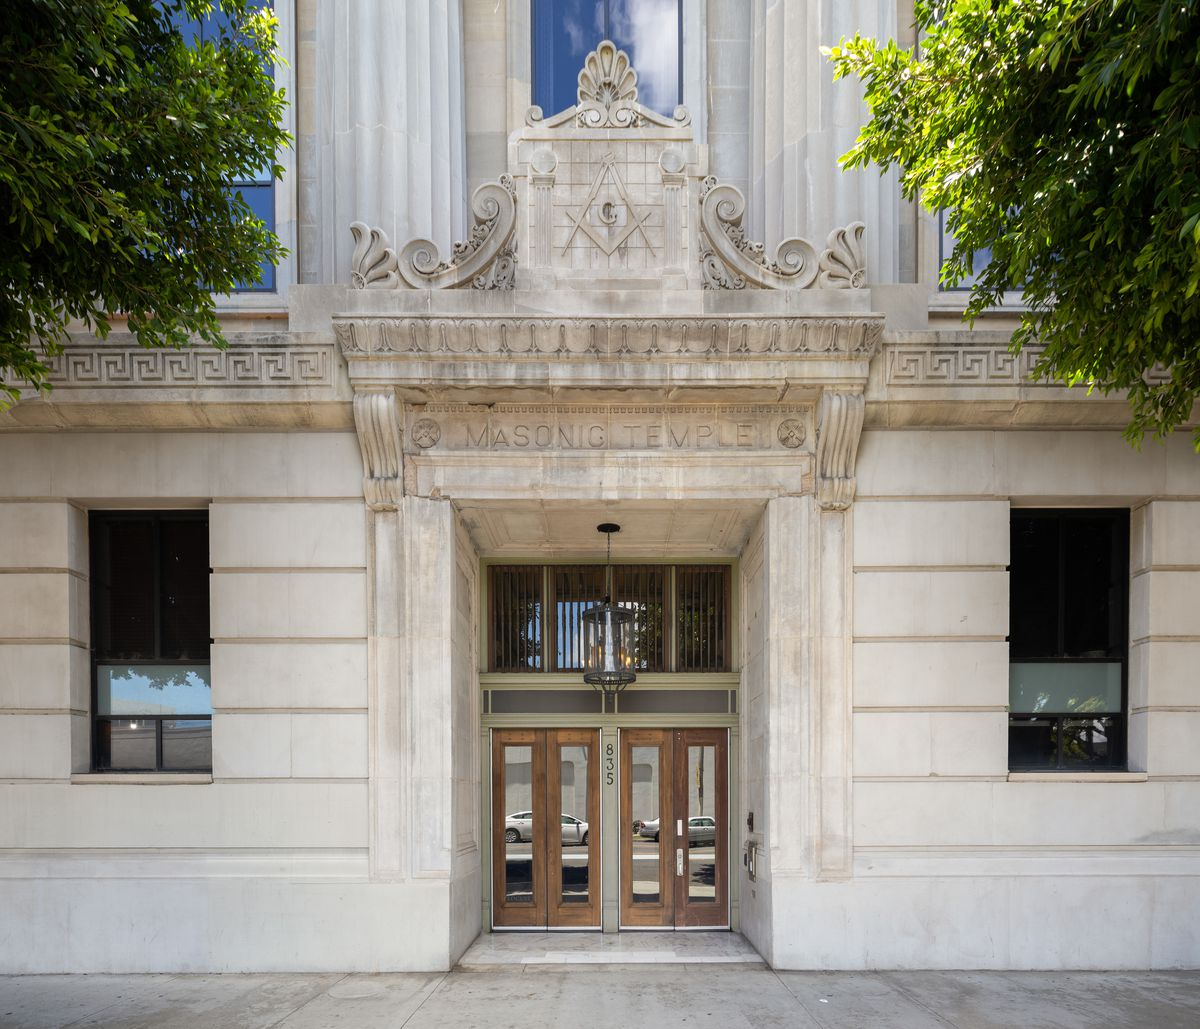 """Double doors framed by a stone entryway with the words """"Masonic Temple."""""""